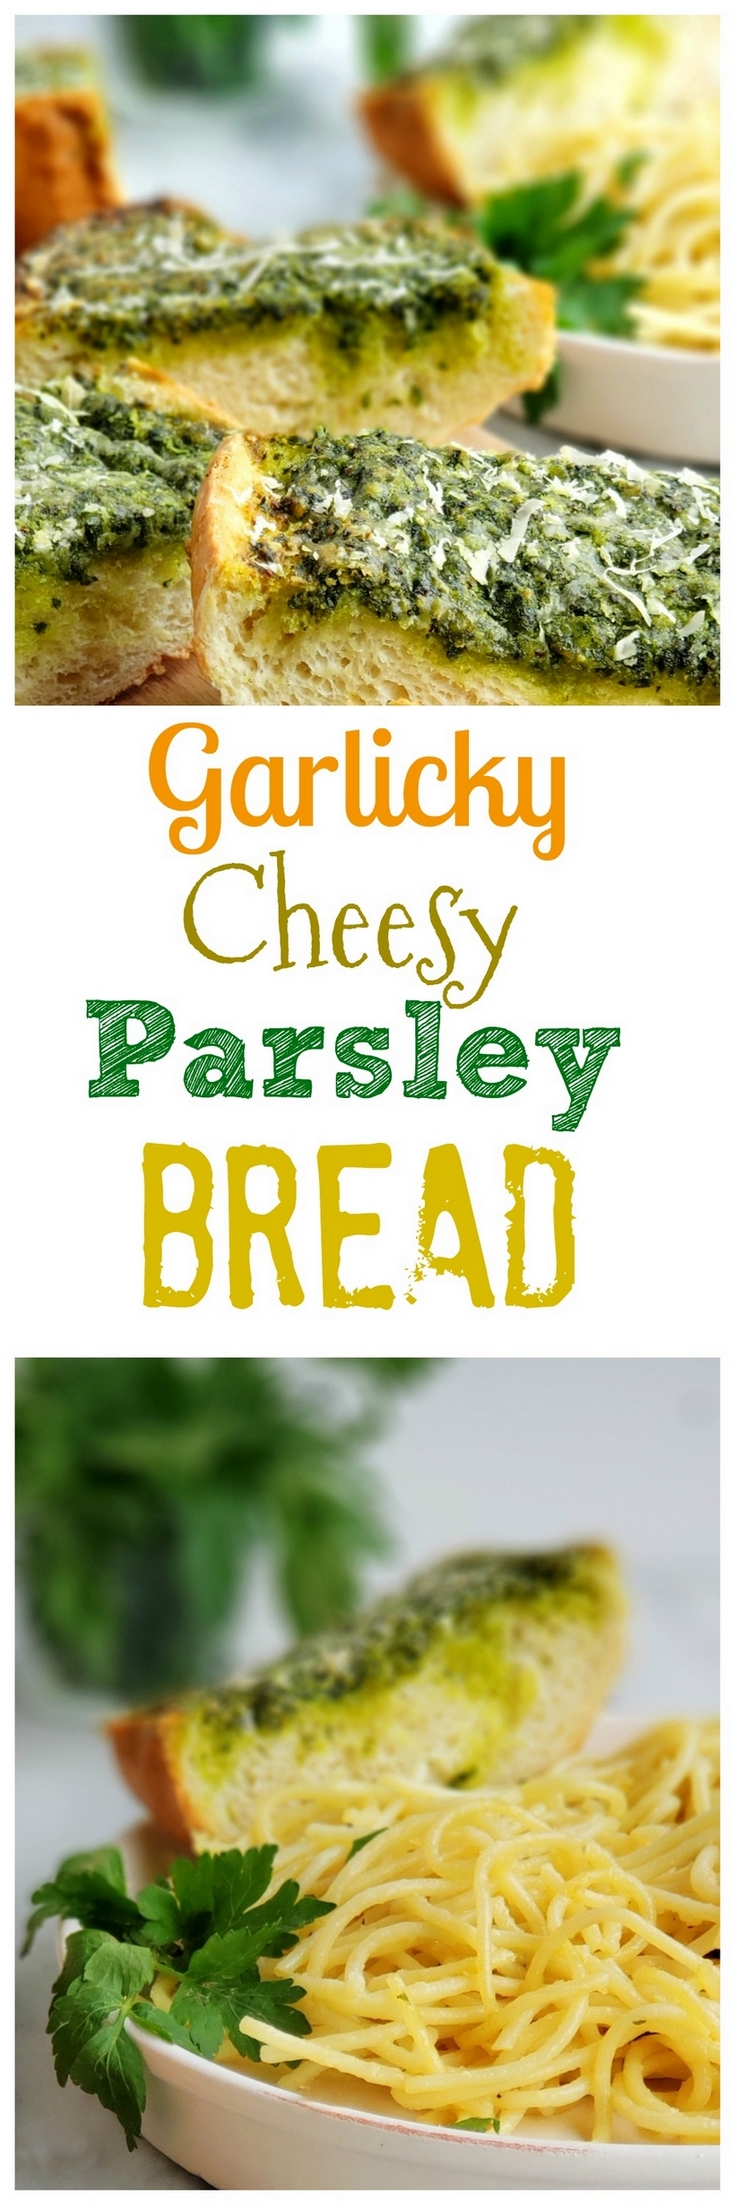 Use up your  leftover parsley with this deliciously, flavorful Garlicky, Cheesy Parsley Bread. It's the perfect side dish for a bowl of pasta. #noblepig #parsley #garlicbread via @cmpollak1